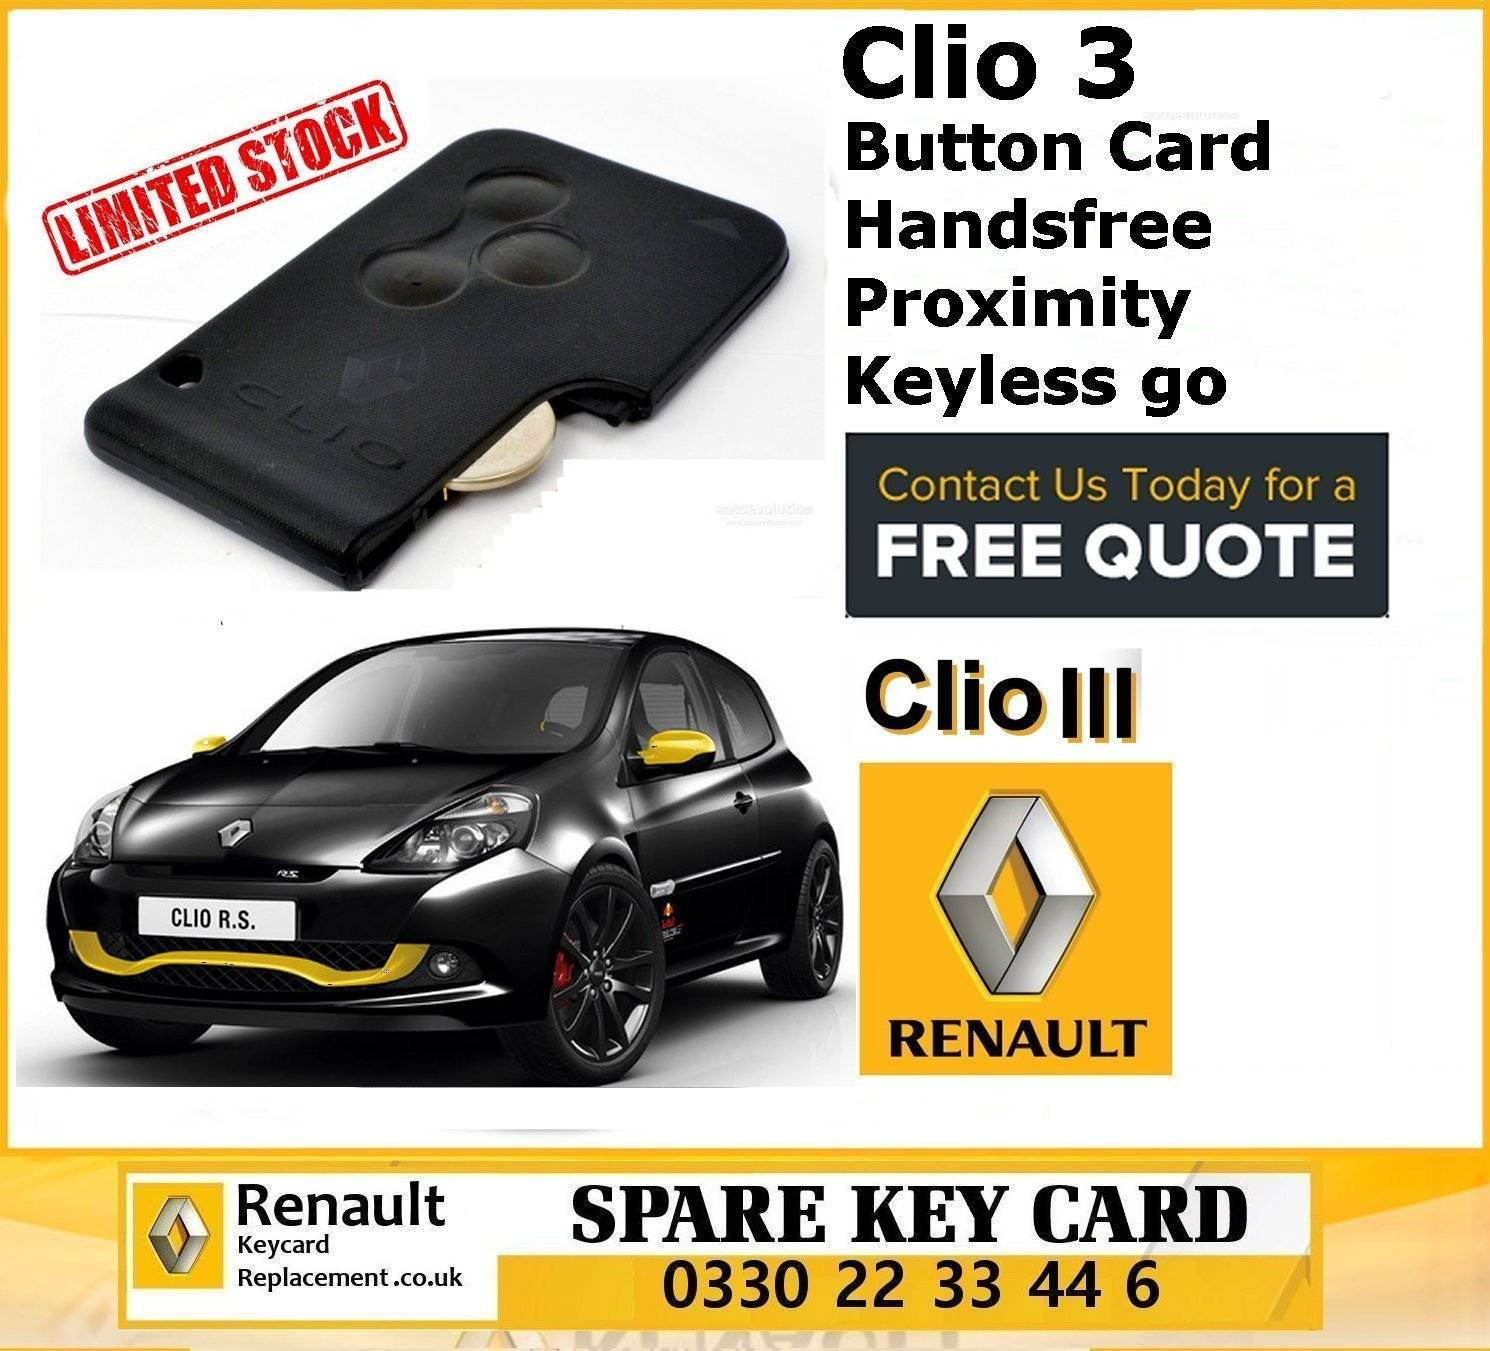 Car Door Unlock Kit >> renault key car key replacement renault key fob Call 0330 2233446 renault scenic key card cost ...